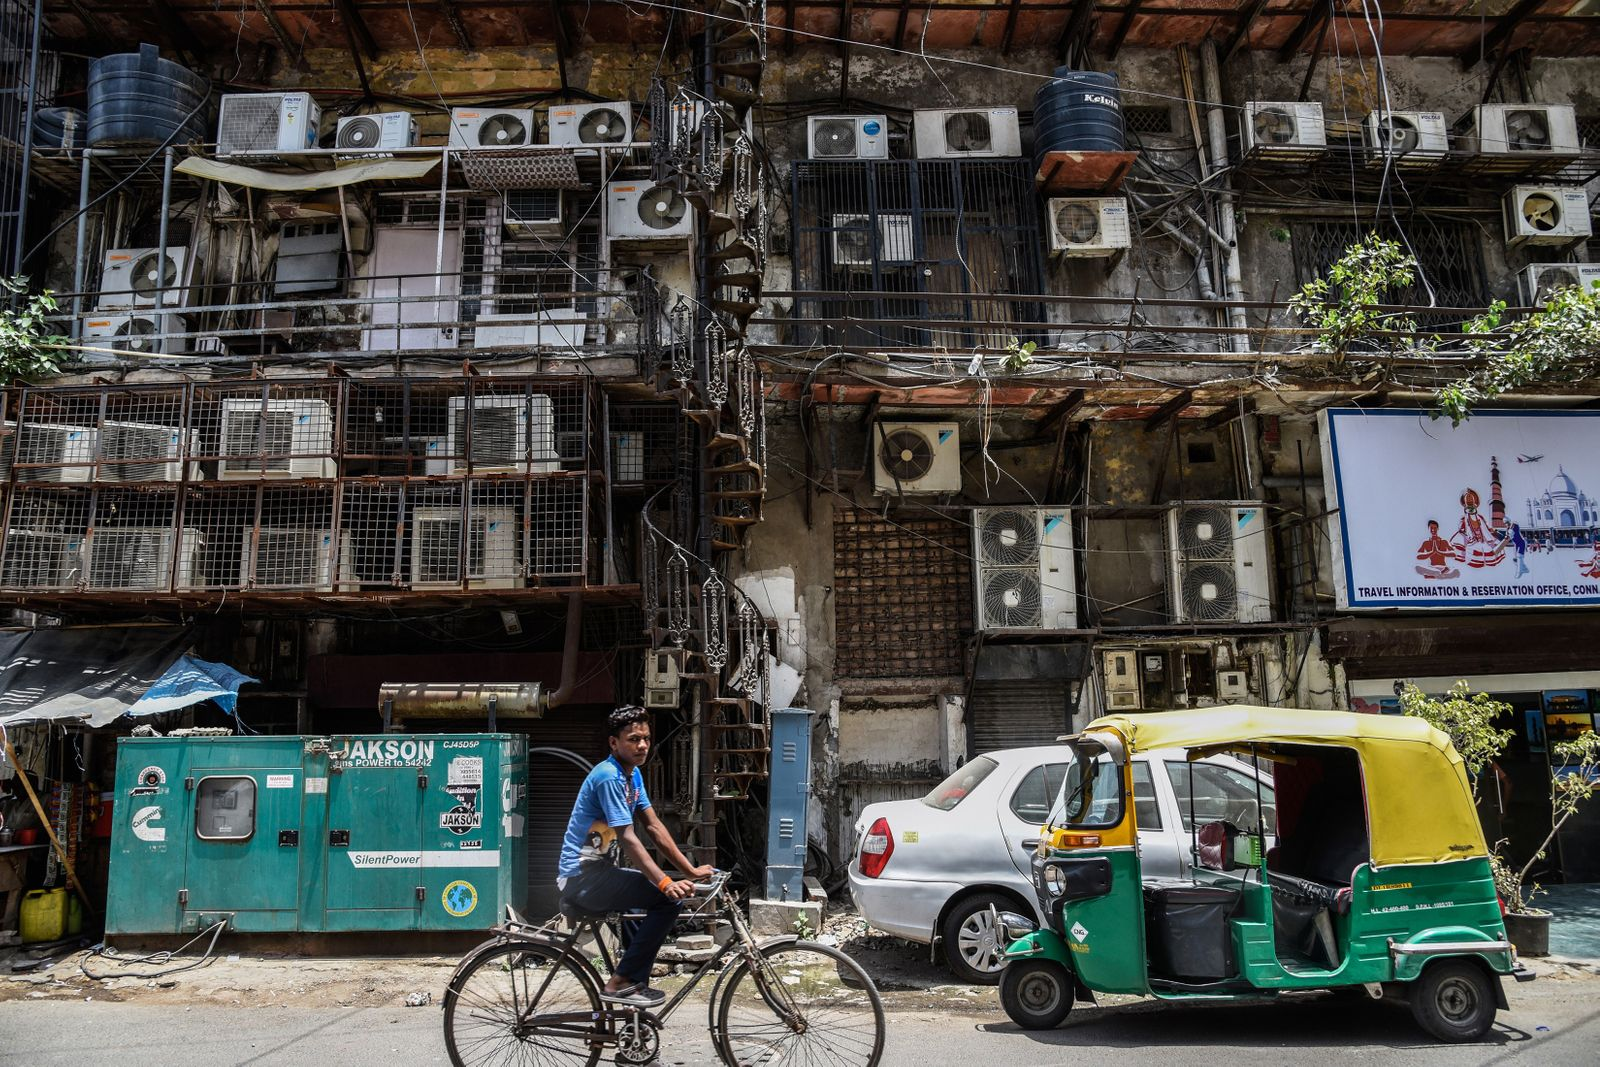 A man cycles past a facade with rows of air conditioners on a hot summer afternoon in New Delhi.